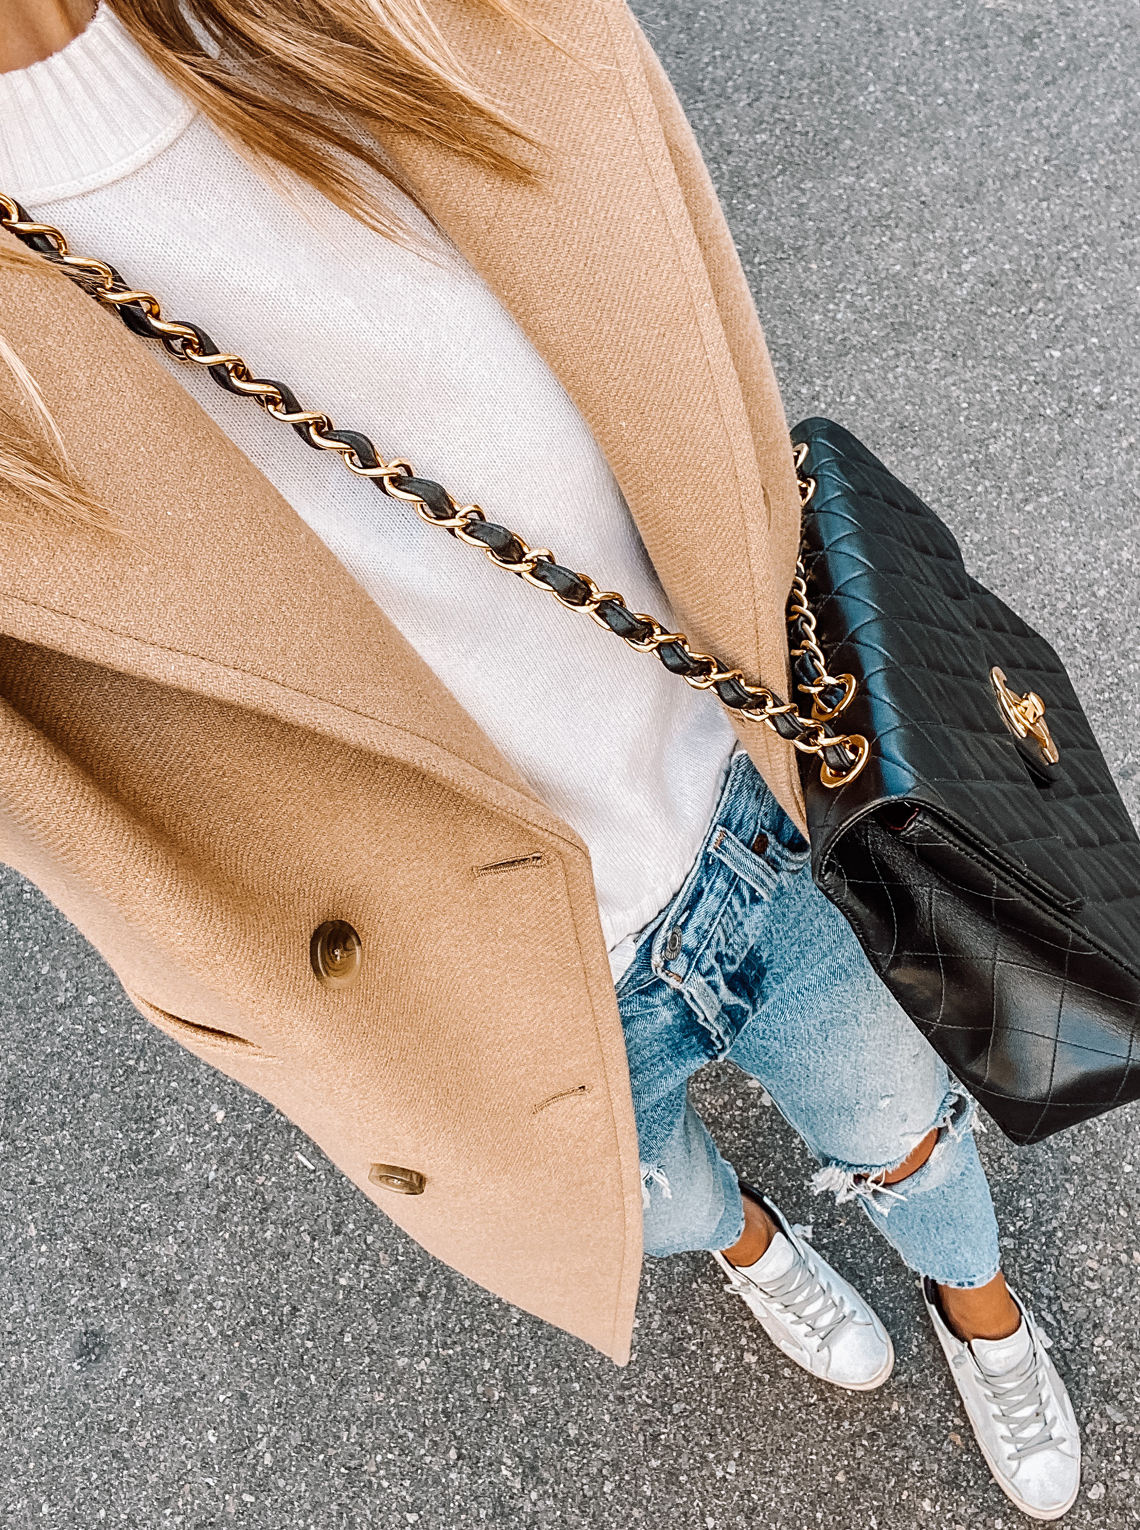 Fashion Jackson Wearing Everlane Camel Coat White Sweater Ripped Levis Jeans Golden Goose Sneakers Chanel Quilted Jumbo XL Handbag